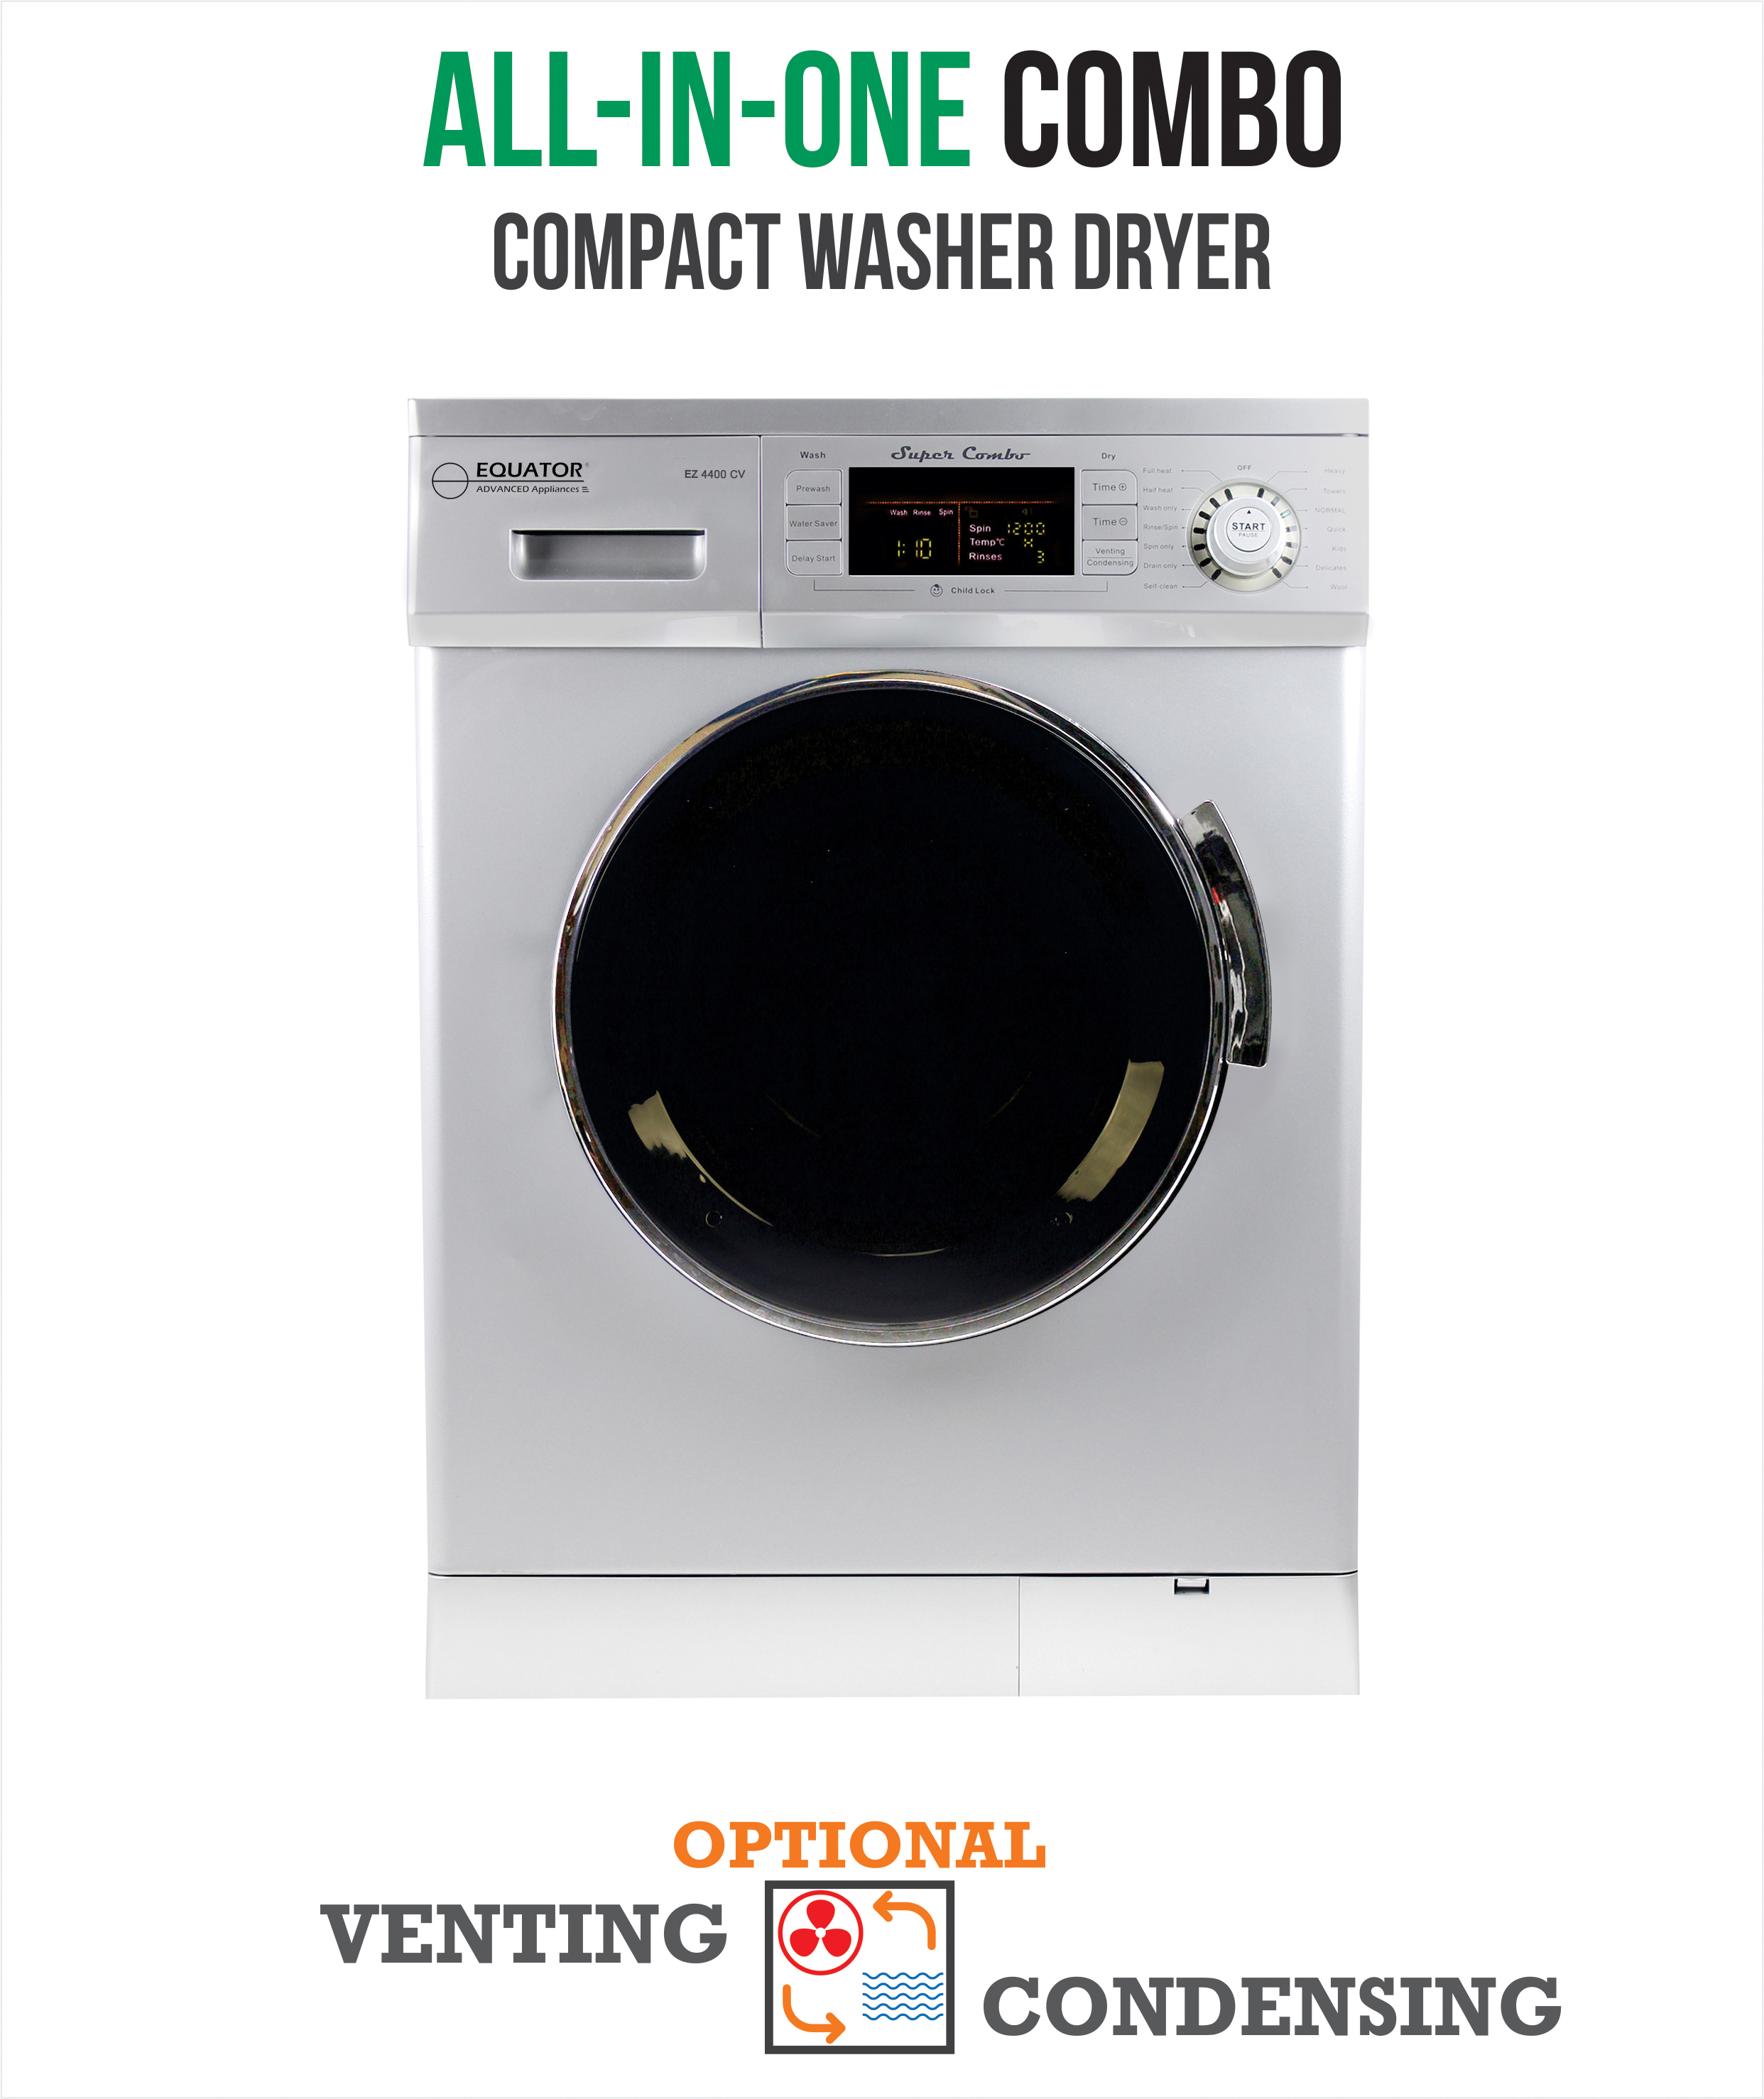 All-in-One 13 lb. 1200 RPM Compact 2016 Combo Washer Dryer with Optional Condensing/ Venting in Silver.